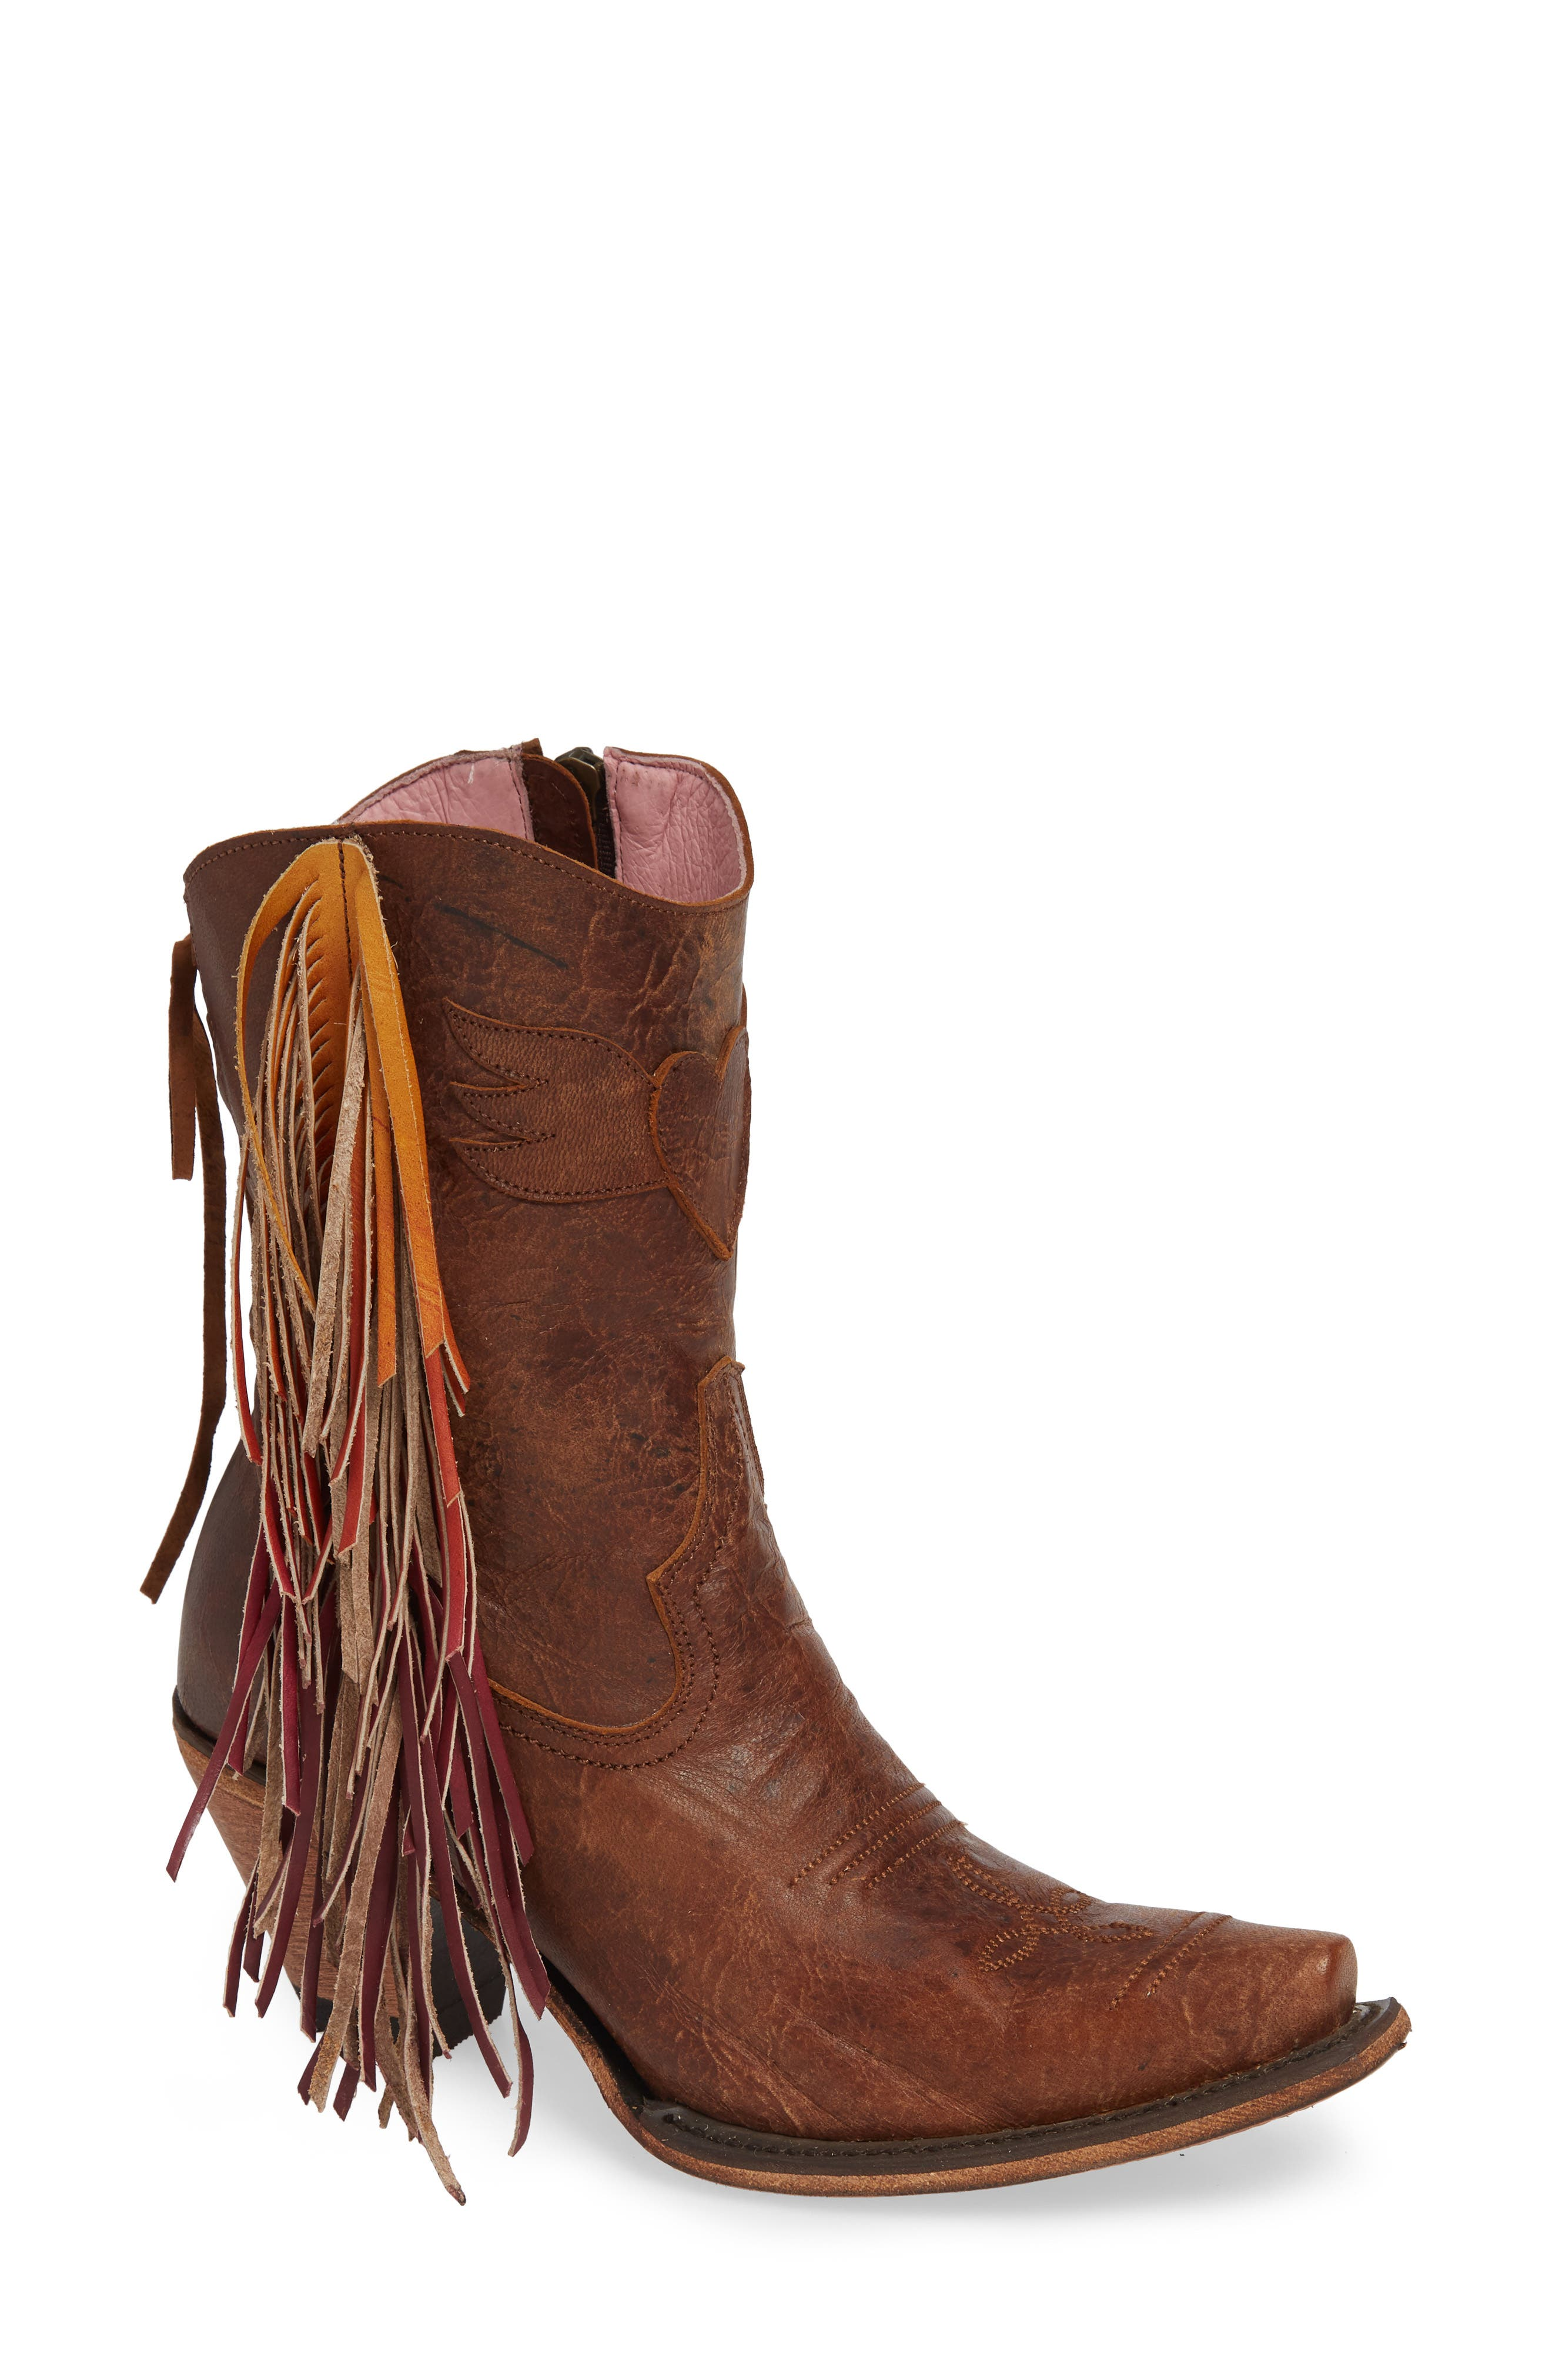 Hand-painted fringe accentuates the playful movement of every step you take in this leather bootie featuring classic, Western stitching and a winged heart. Part of a limited collaboration between LANE BOOTS and eclectic boho brand Junk Gypsy. Style Name: Lane Boots X Junk Gypsy Fringe Western Bootie (Women). Style Number: 5727896. Available in stores.